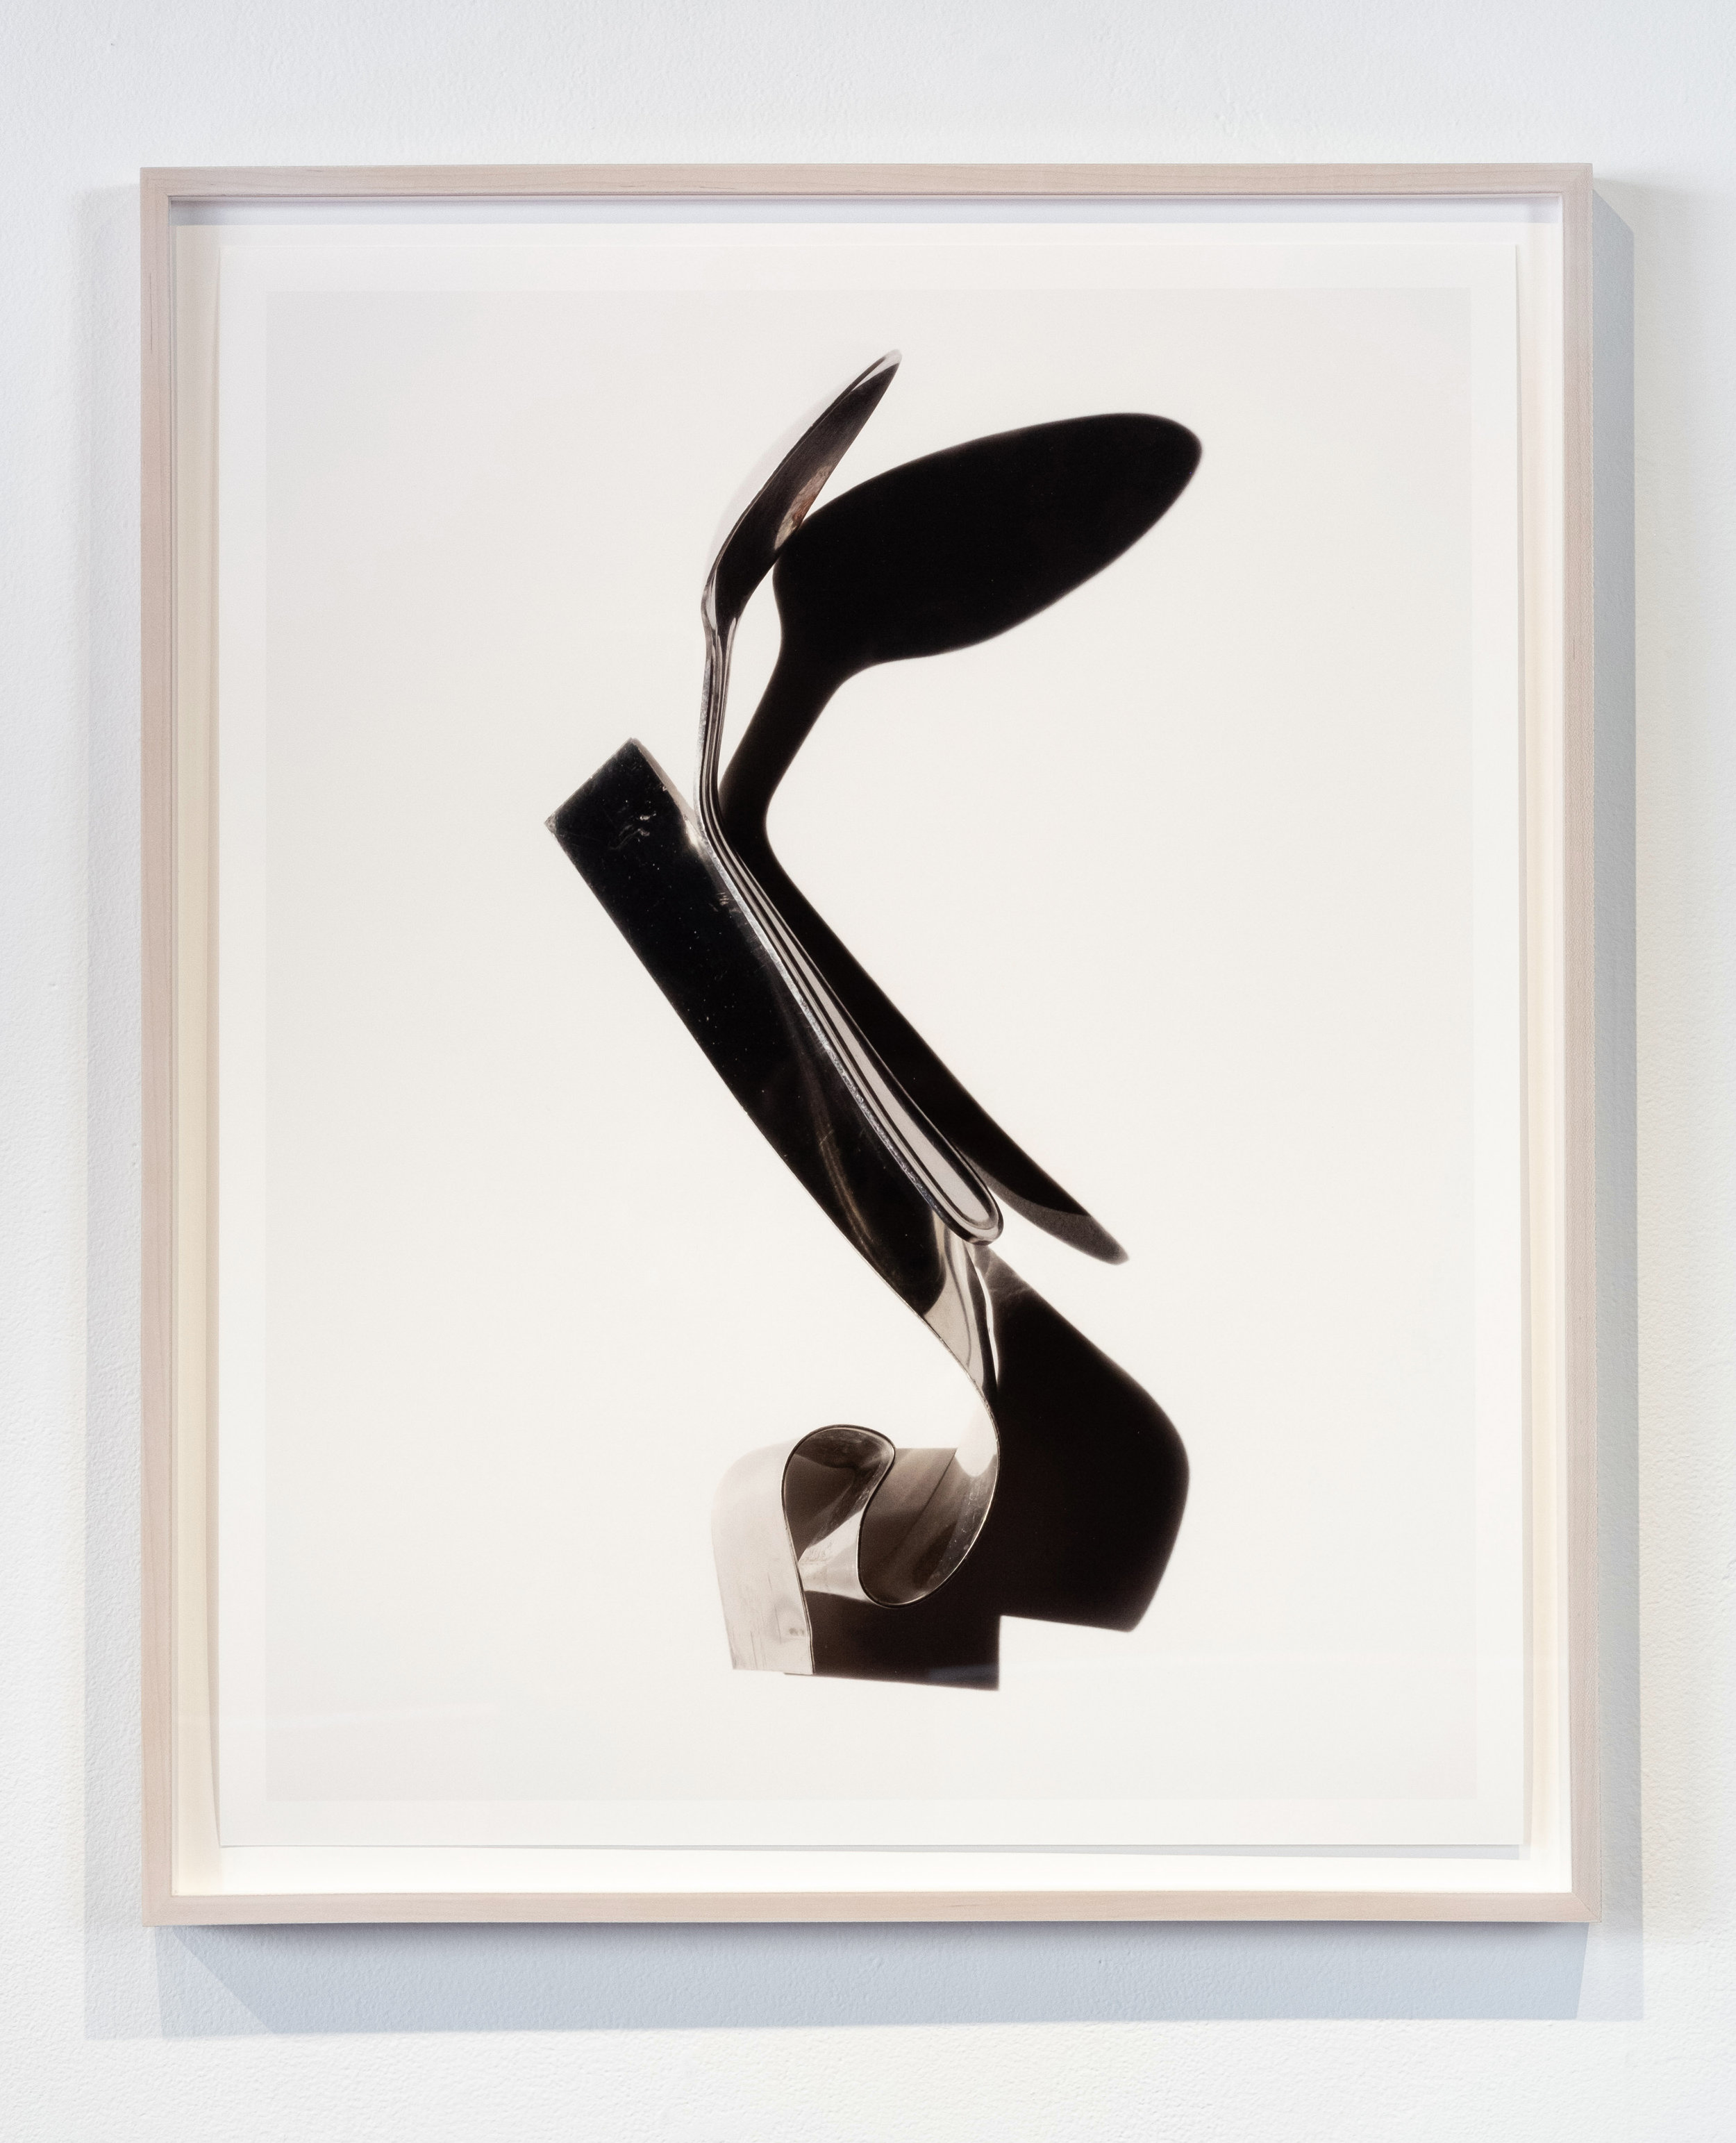 Spoon and Twisted Metal   20x25 inches